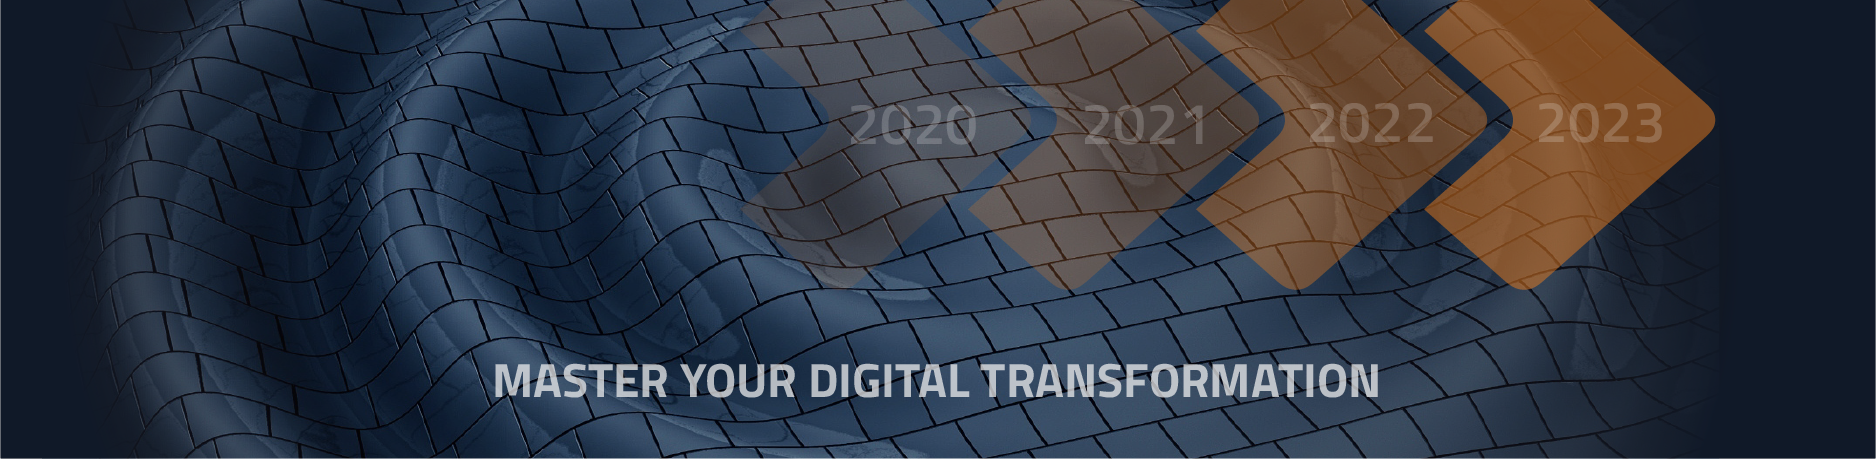 Master your digital transformation